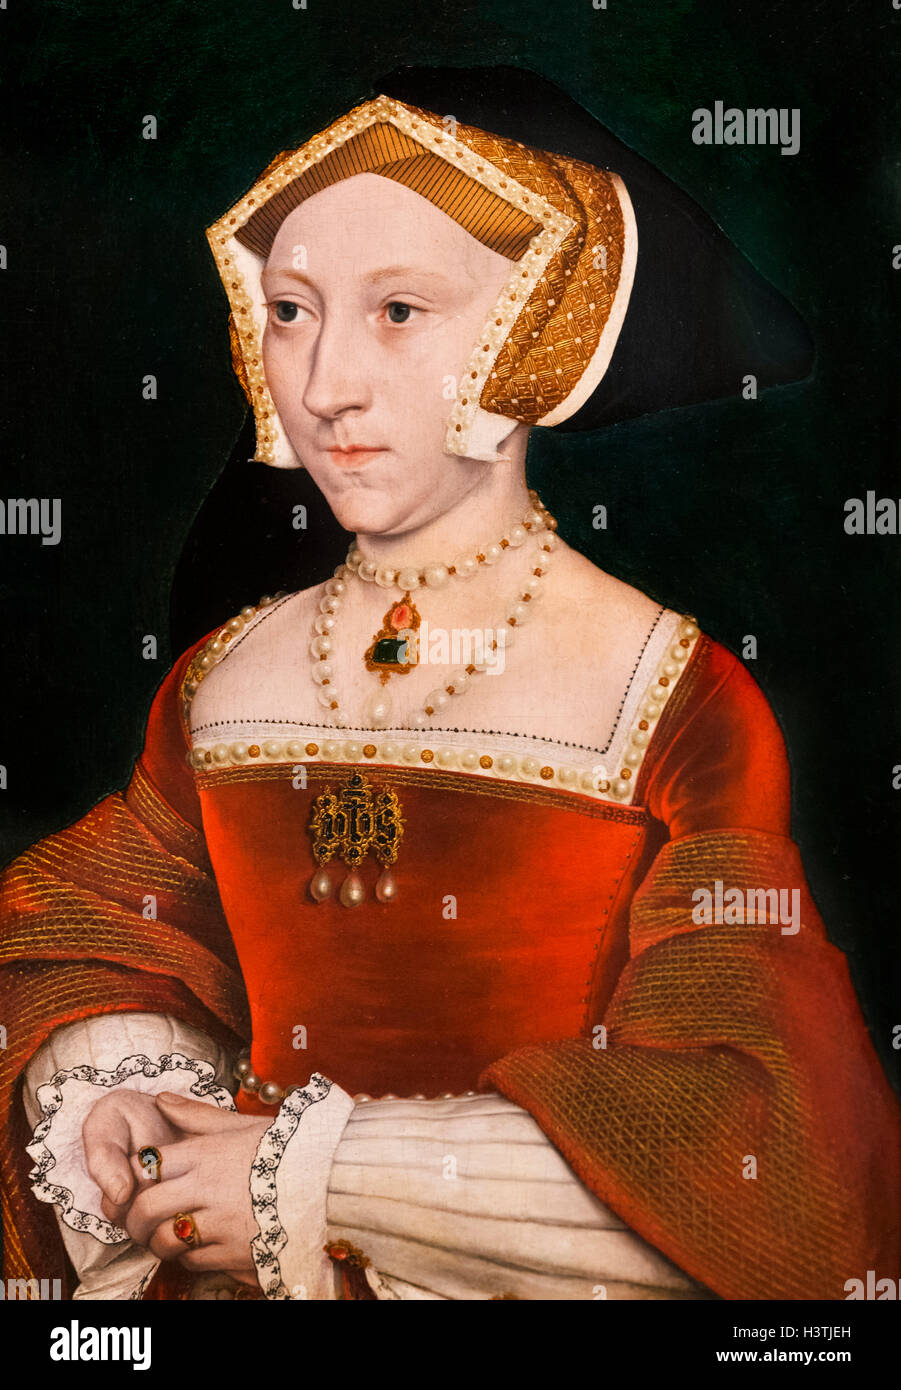 Jane Seymour (1508-1537), third wife of King Henry VIII of England, by Workshop of Hans Holbein the Younger, c.1540. - Stock Image